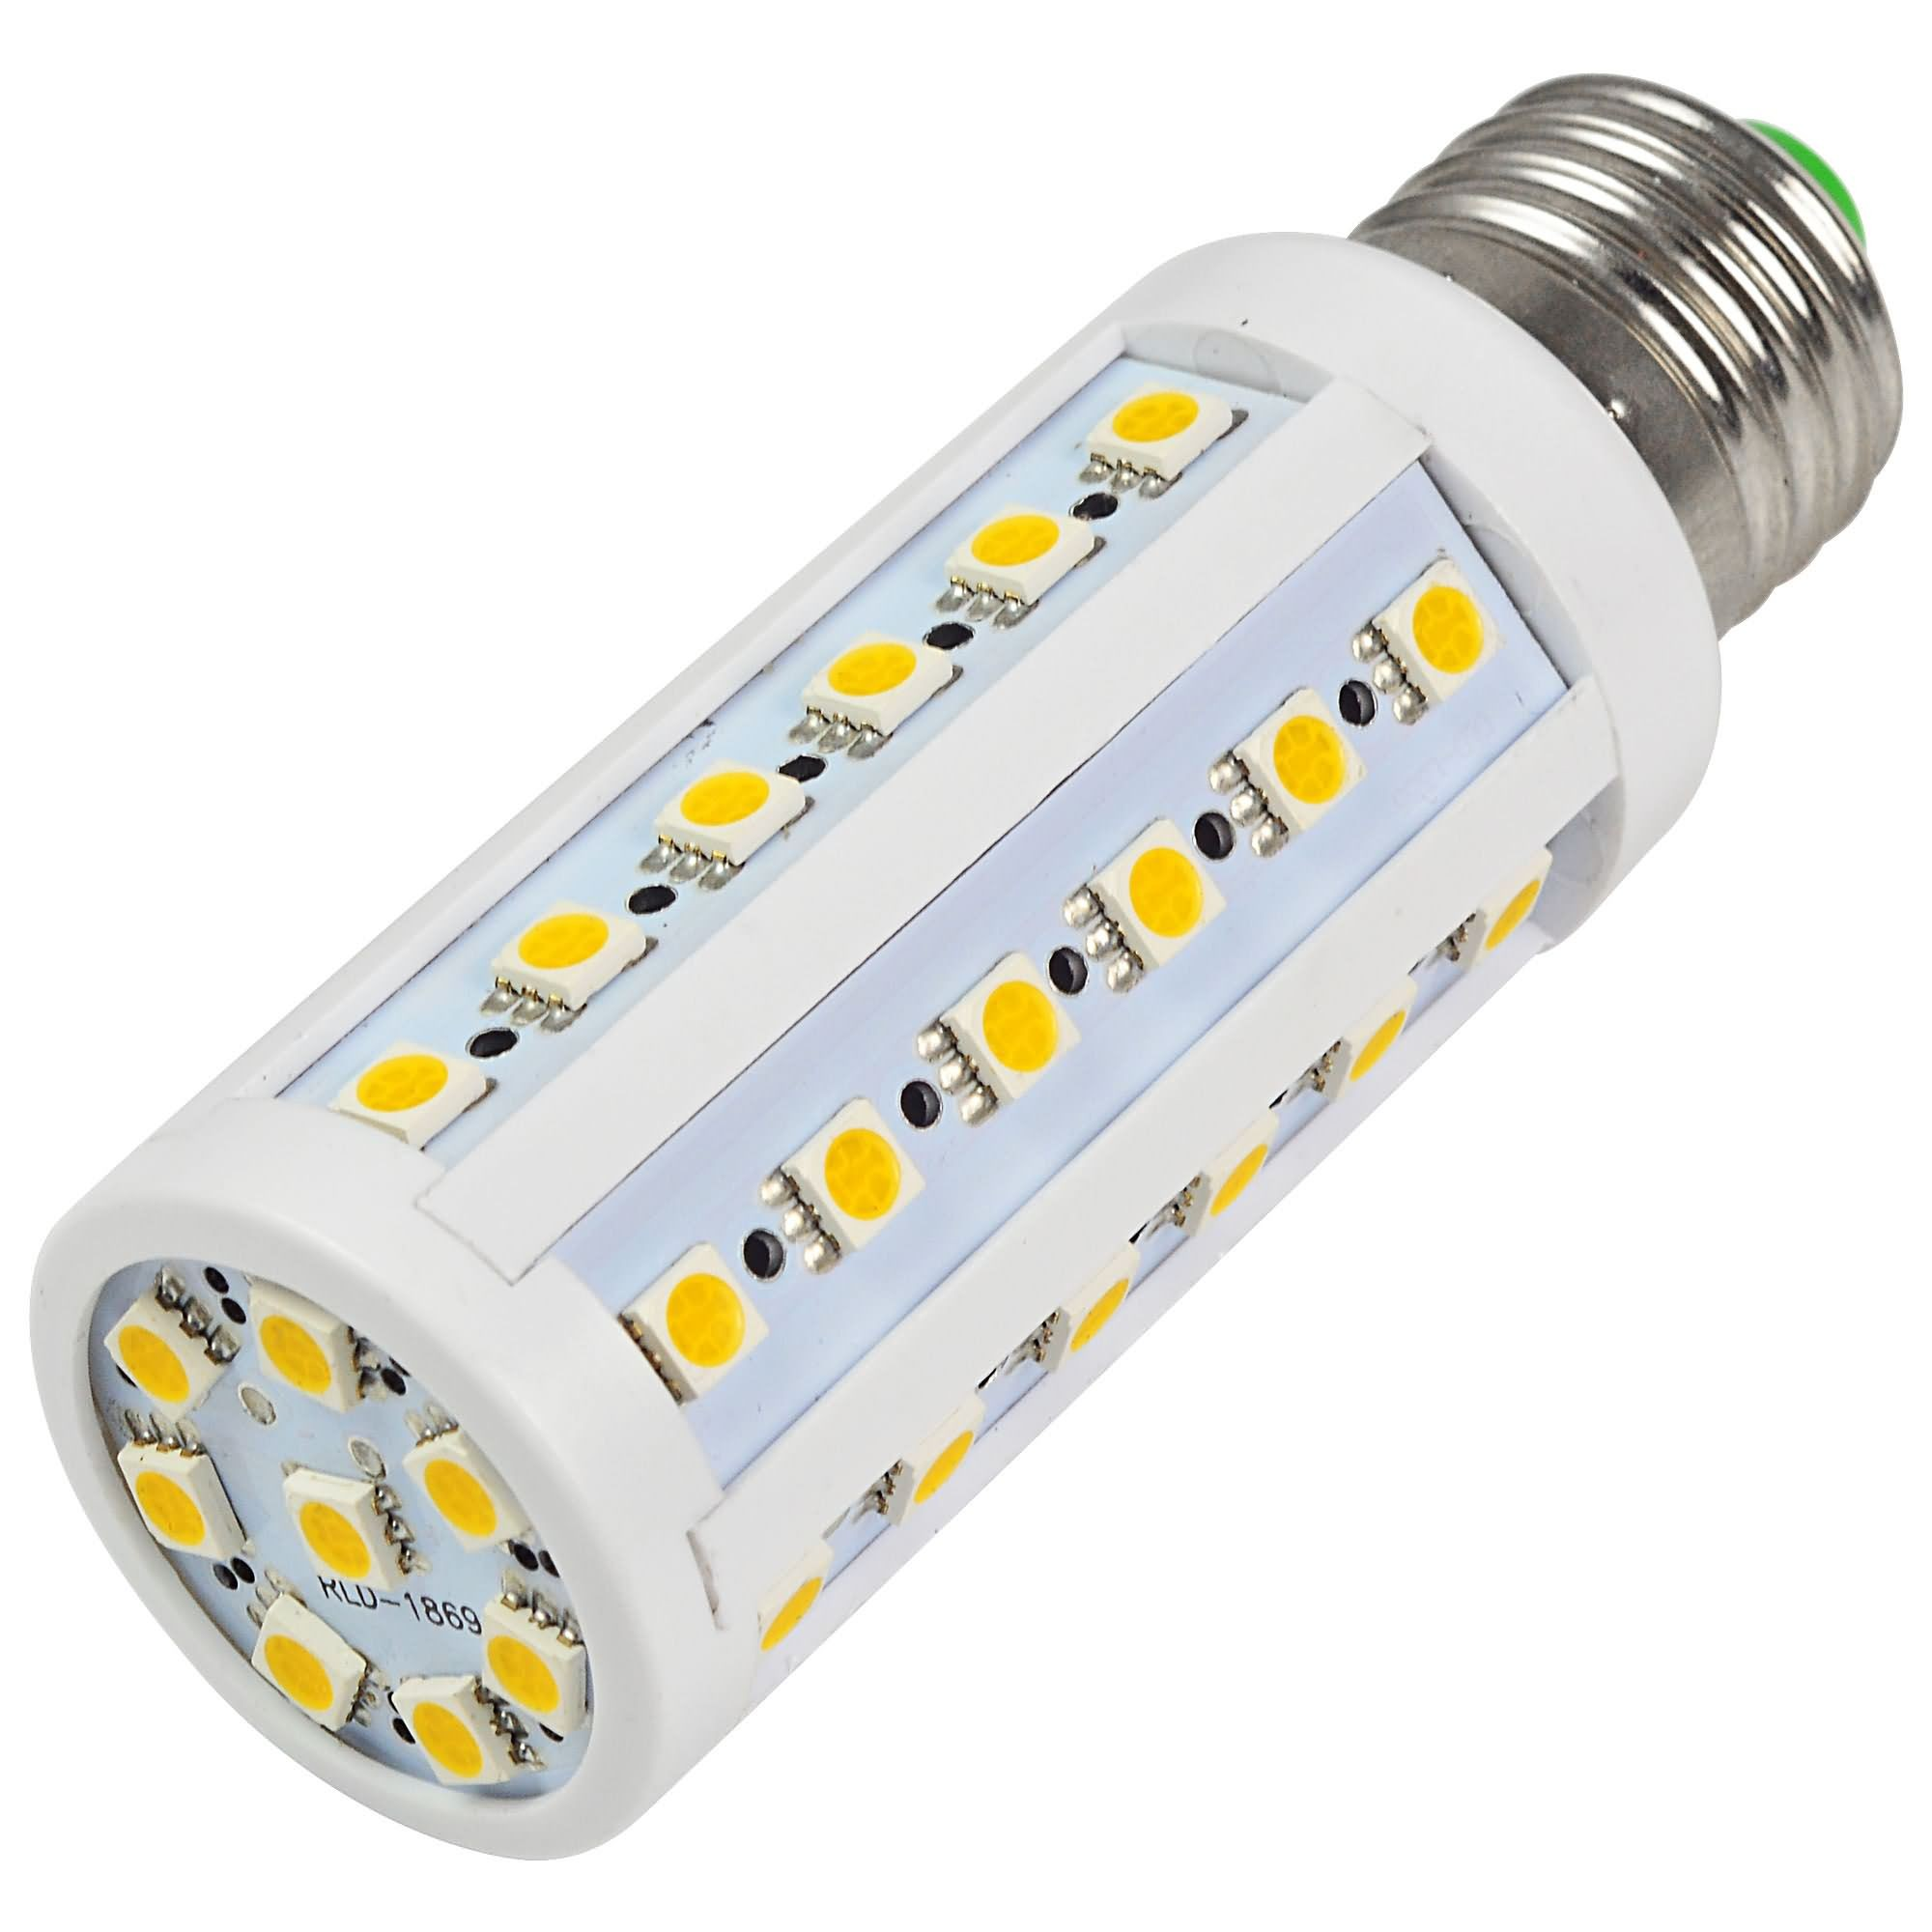 Mengsled Mengs E27 7w Led Corn Light 42x 5050 Smd Leds Led Bulb In Warm White Cool White